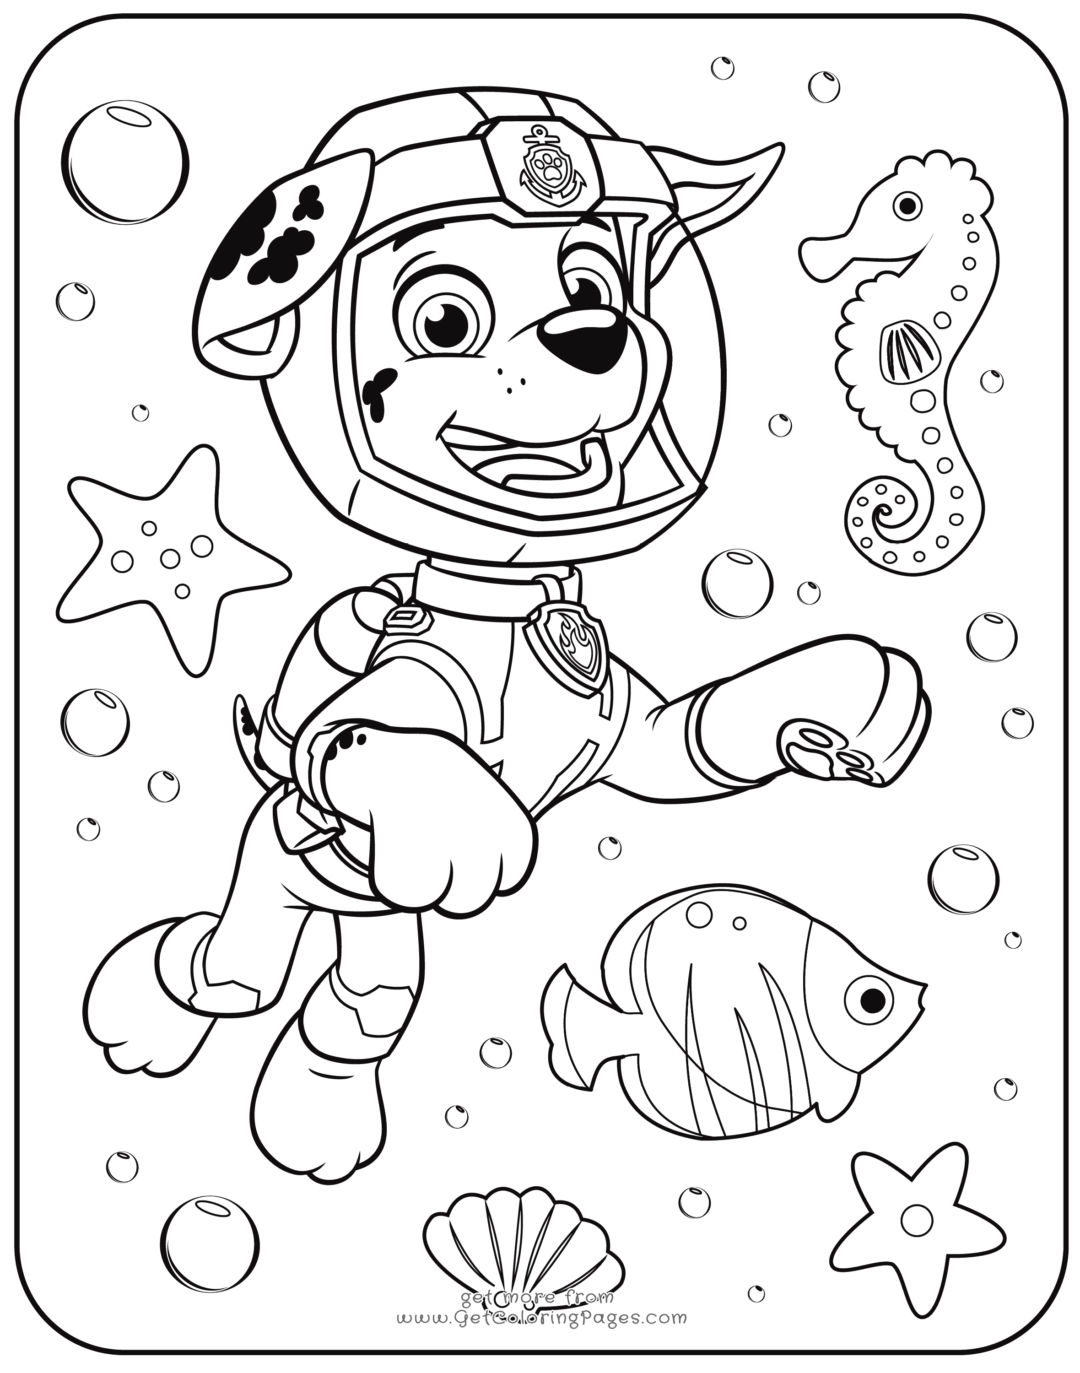 Paw Patrol Coloring Pages | Coloring Pages | Paw Patrol